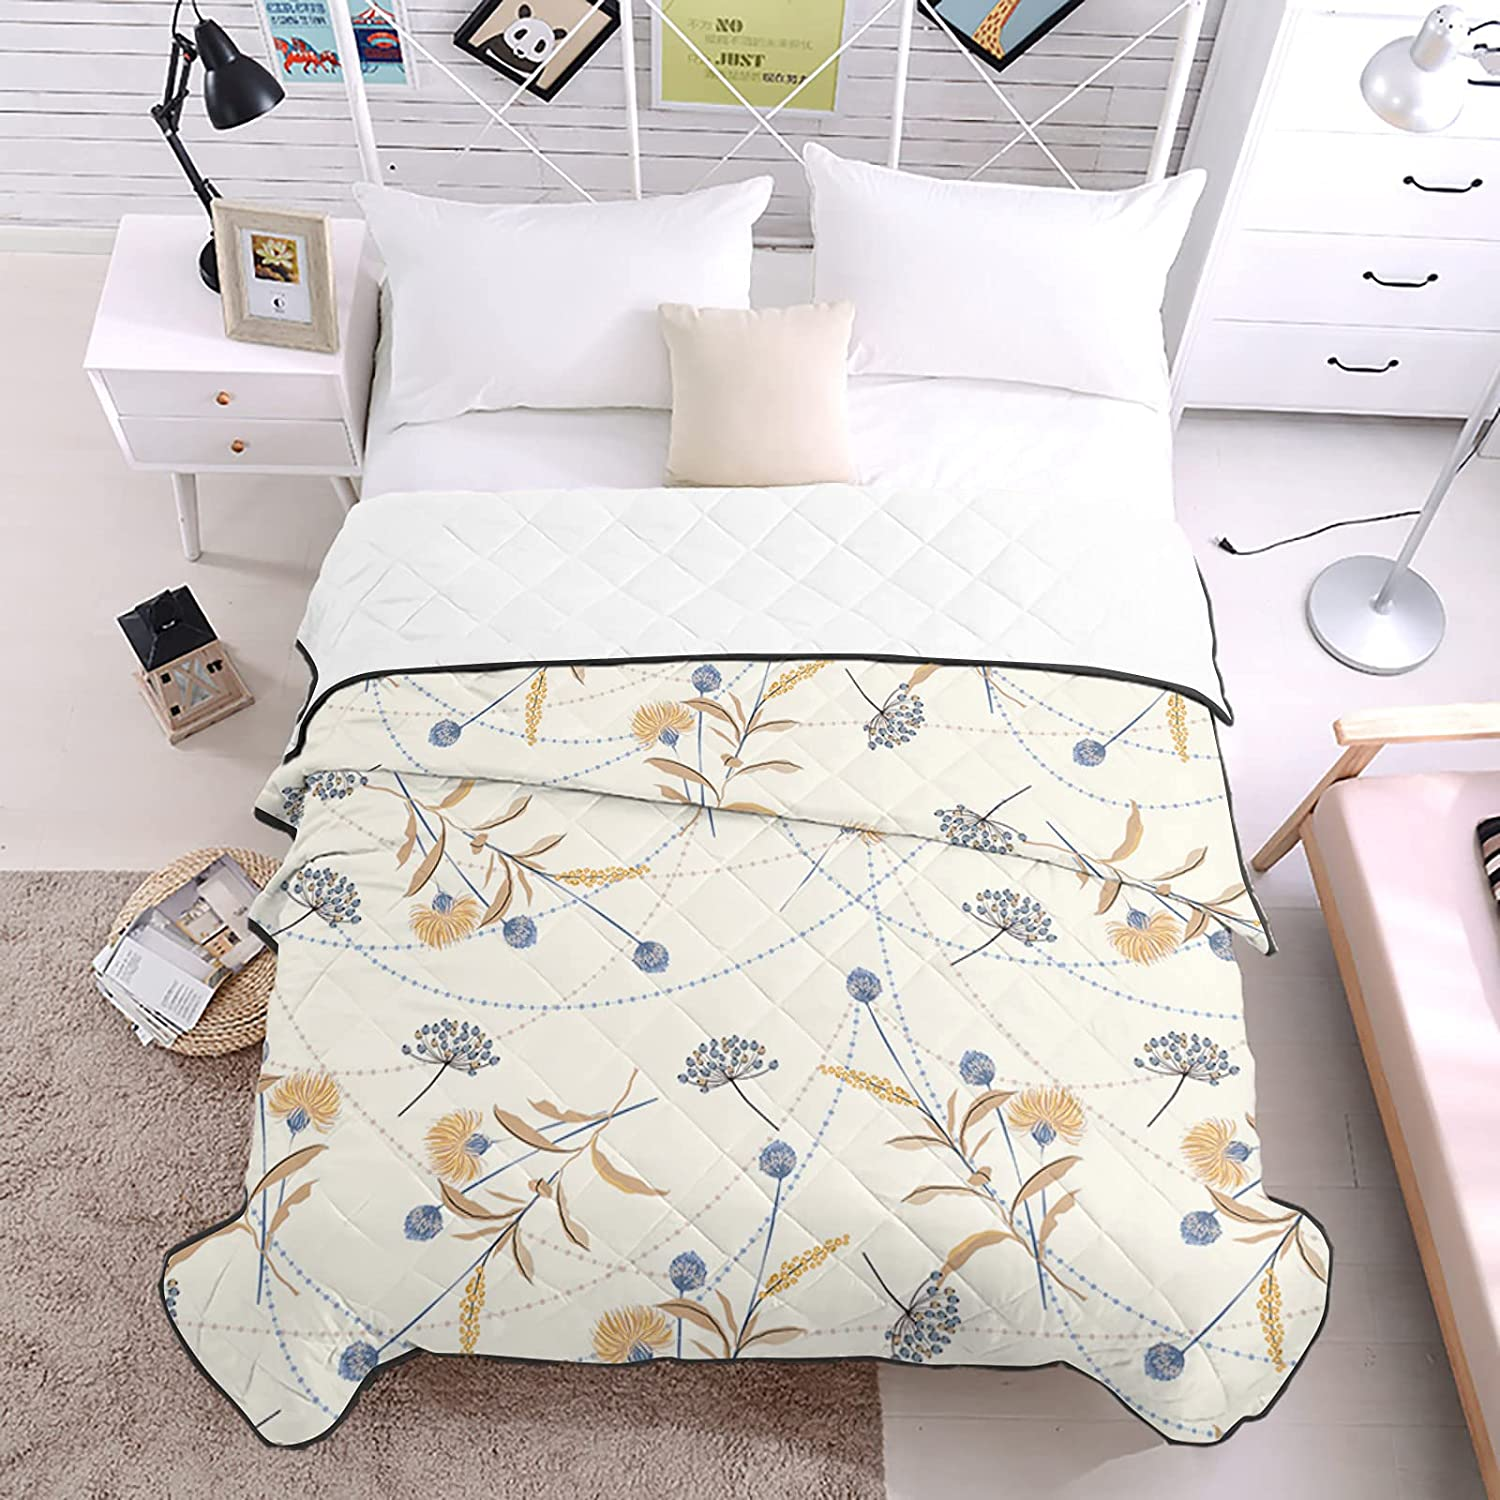 DecorLovee Inventory cleanup selling sale Bedding Duvets Fresh Country Great interest Plant Sea All Dandelion